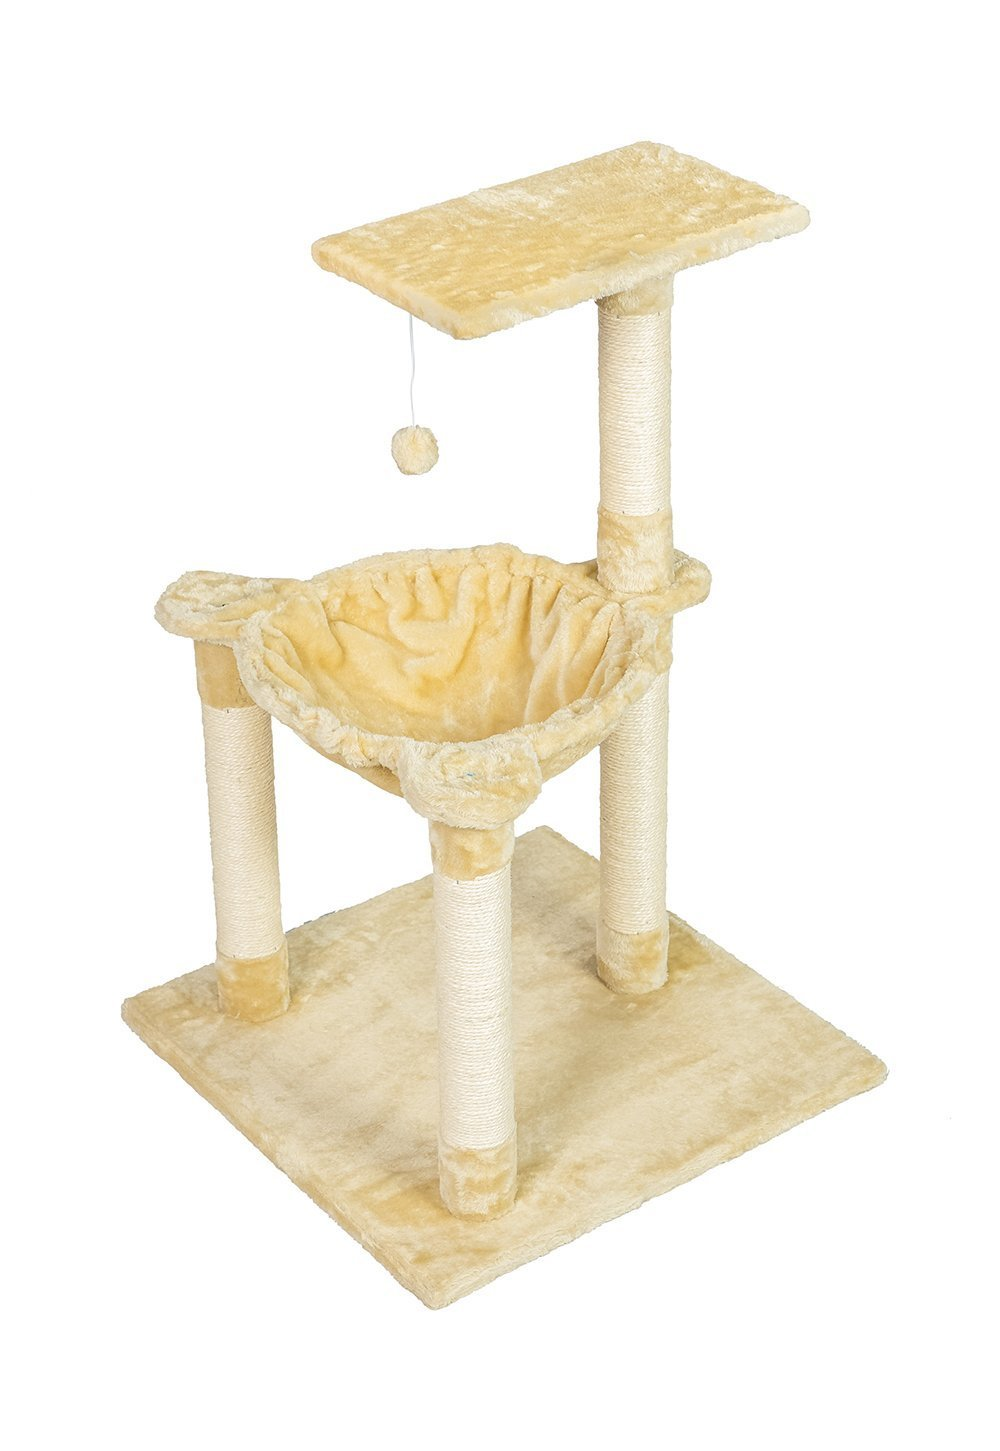 Buy-Hive Cat Tree Bed Condo Scratching Post Kitty Play House Activity Lounge Hammock by